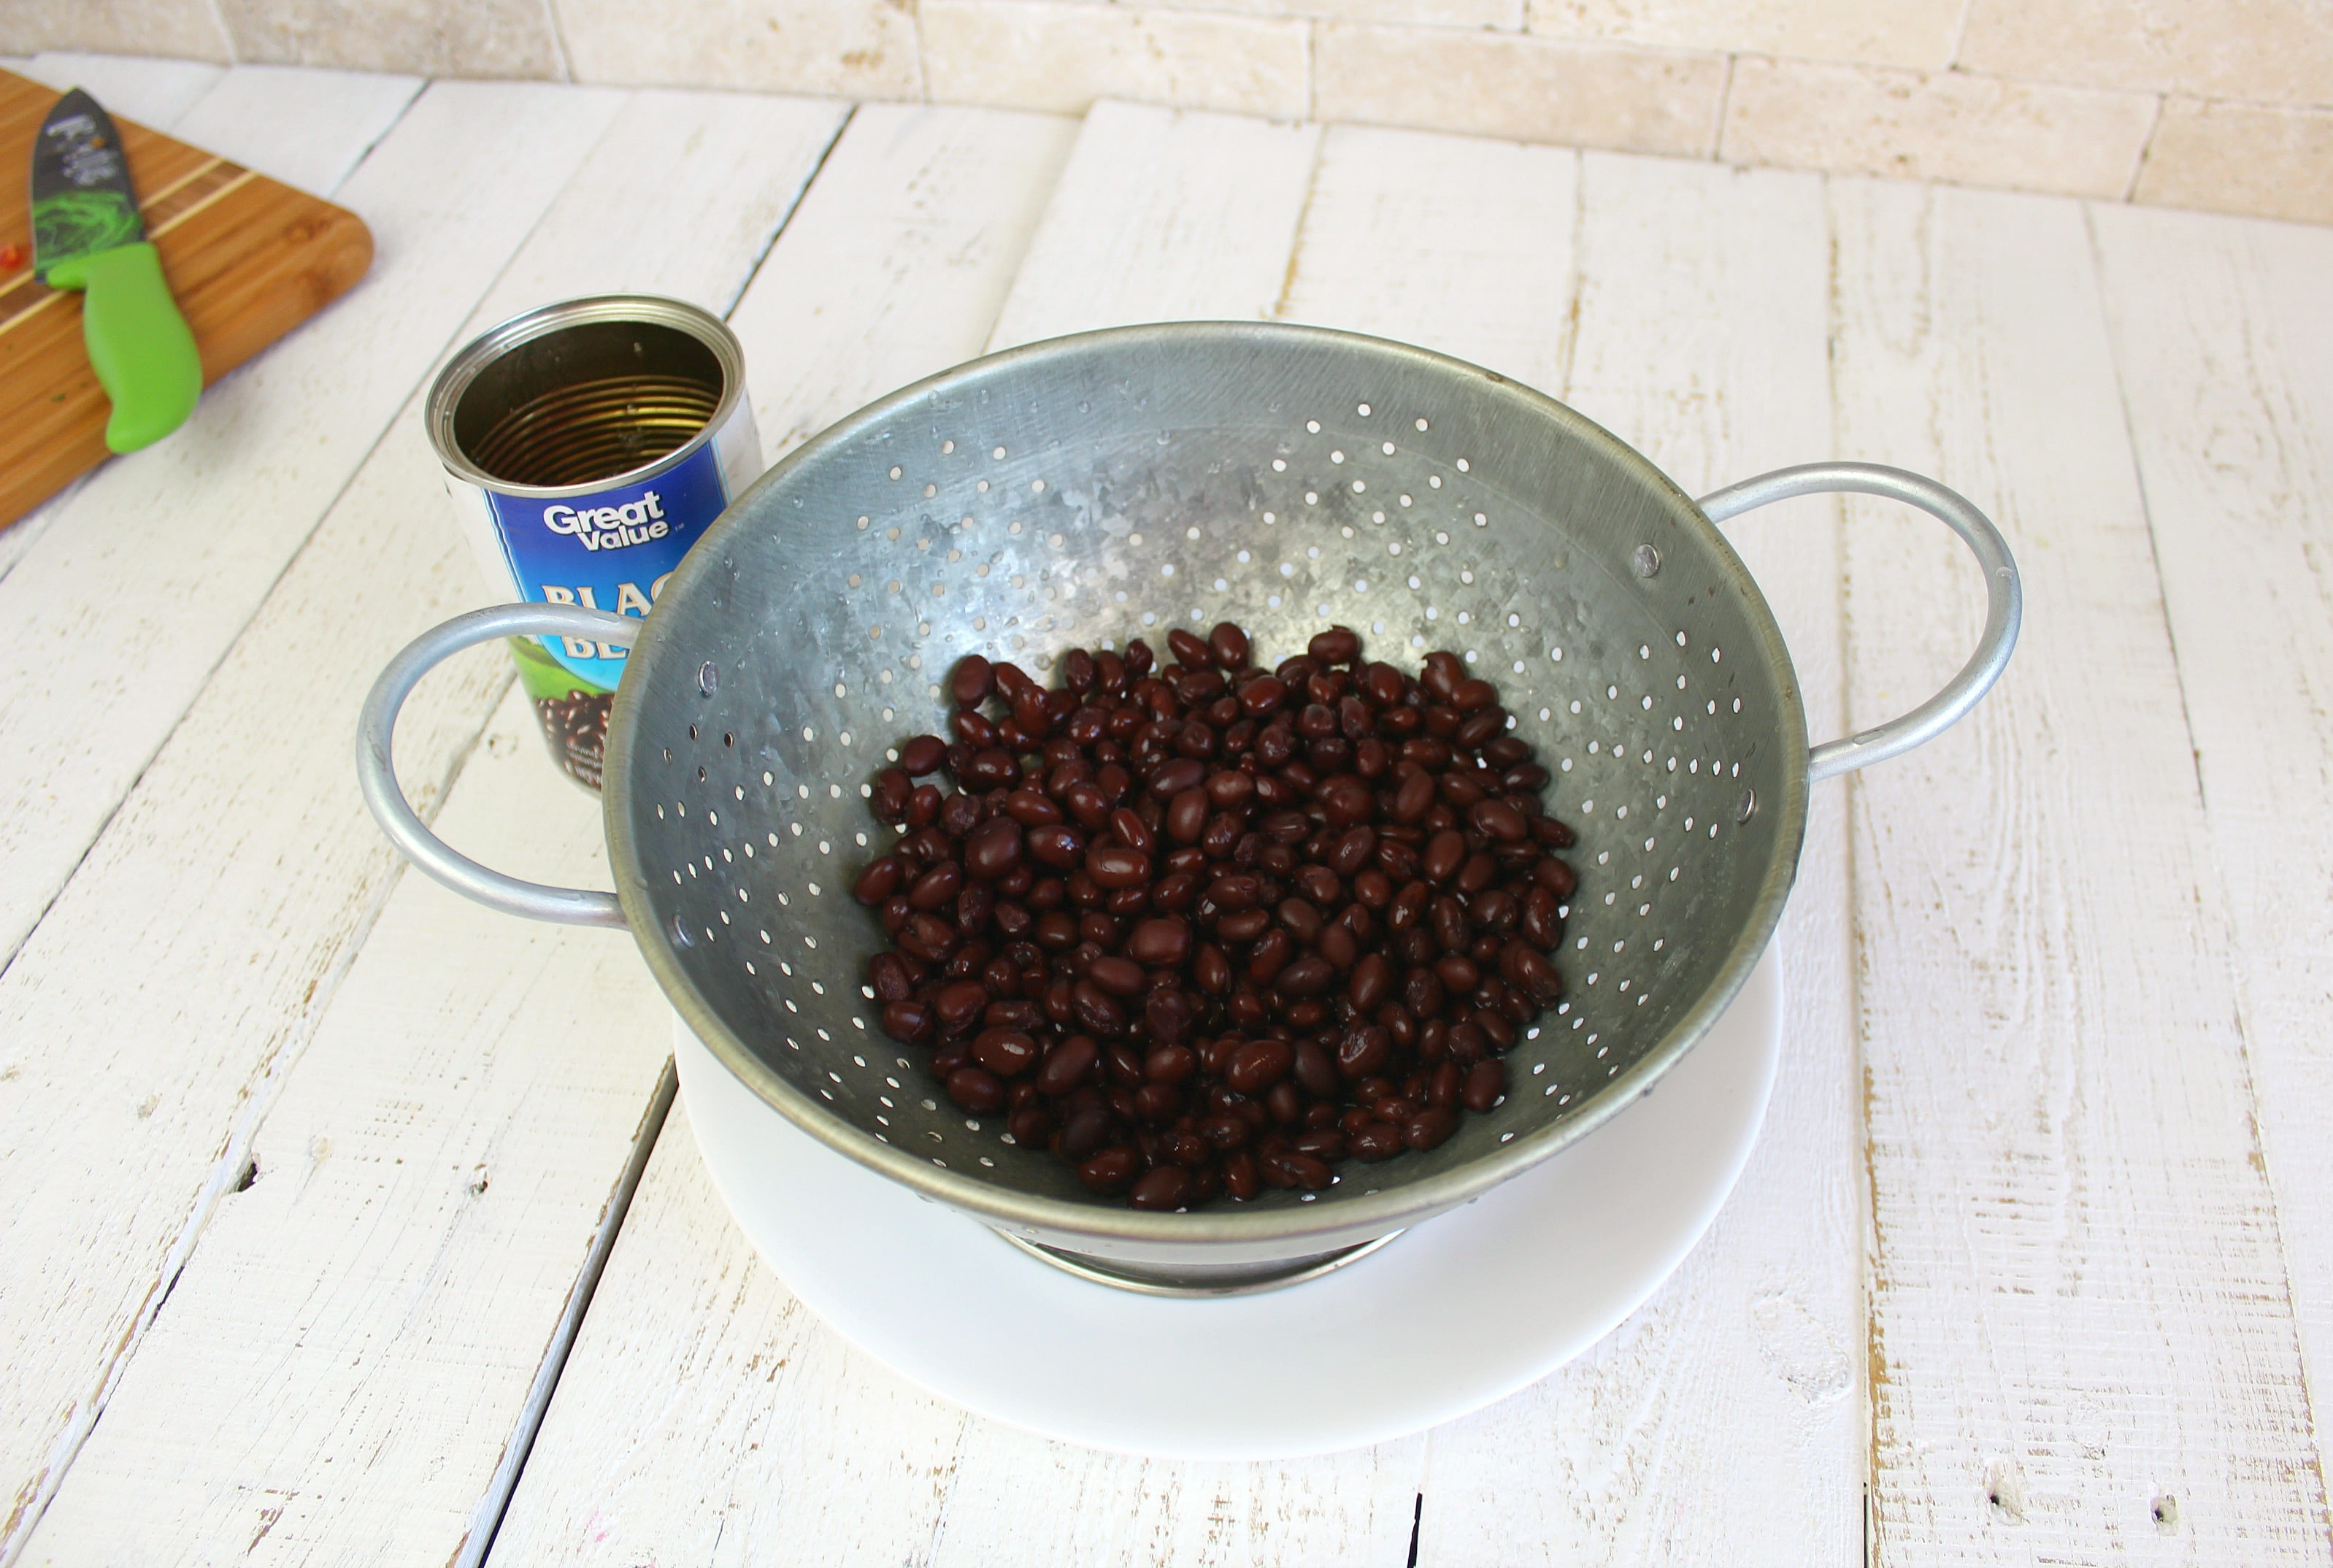 Drain and rinse black beans in colander.